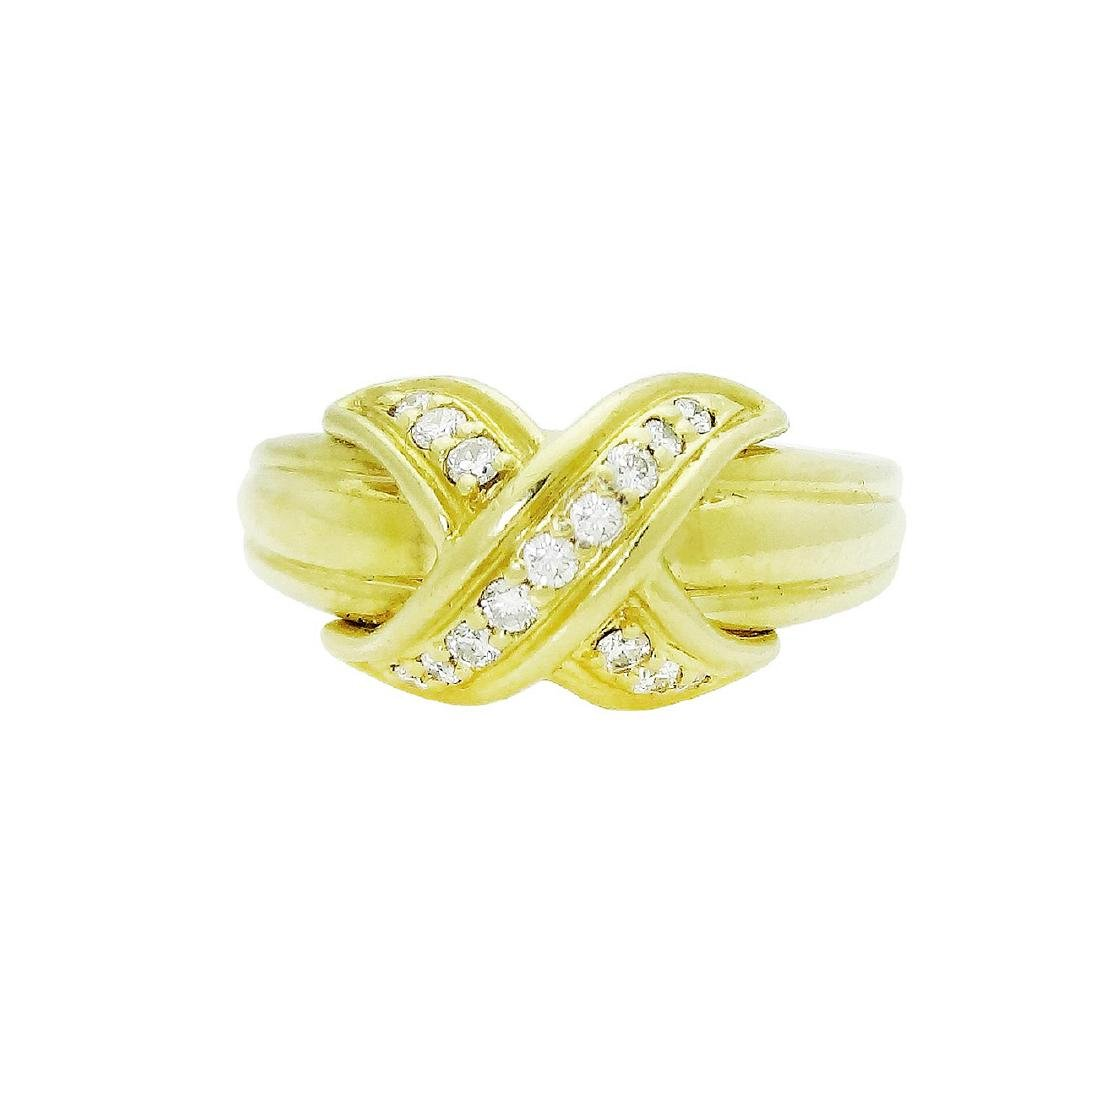 Tiffany & Co. 18K Yellow Gold Signature X Diamond Ring